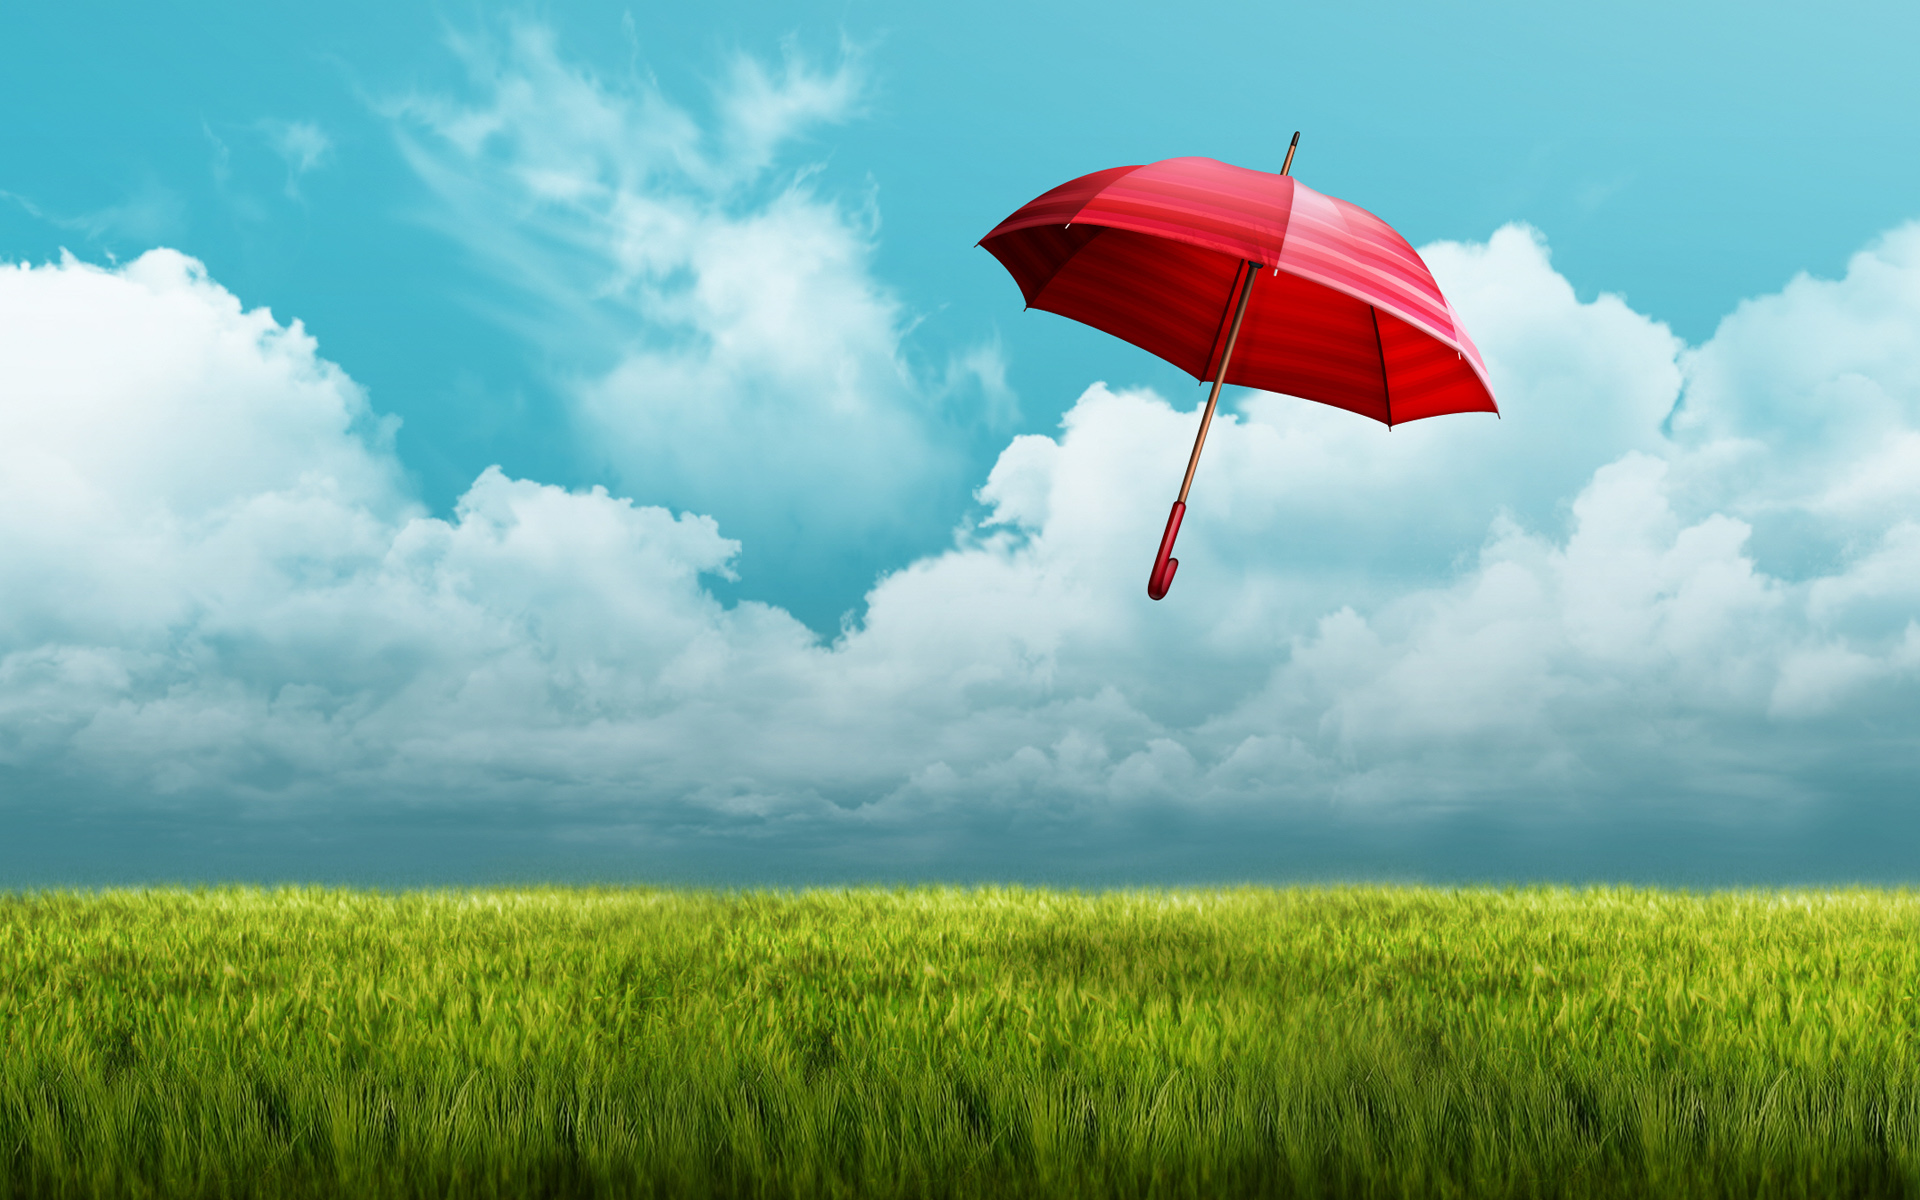 HD Wallpapers Umbrella Fields